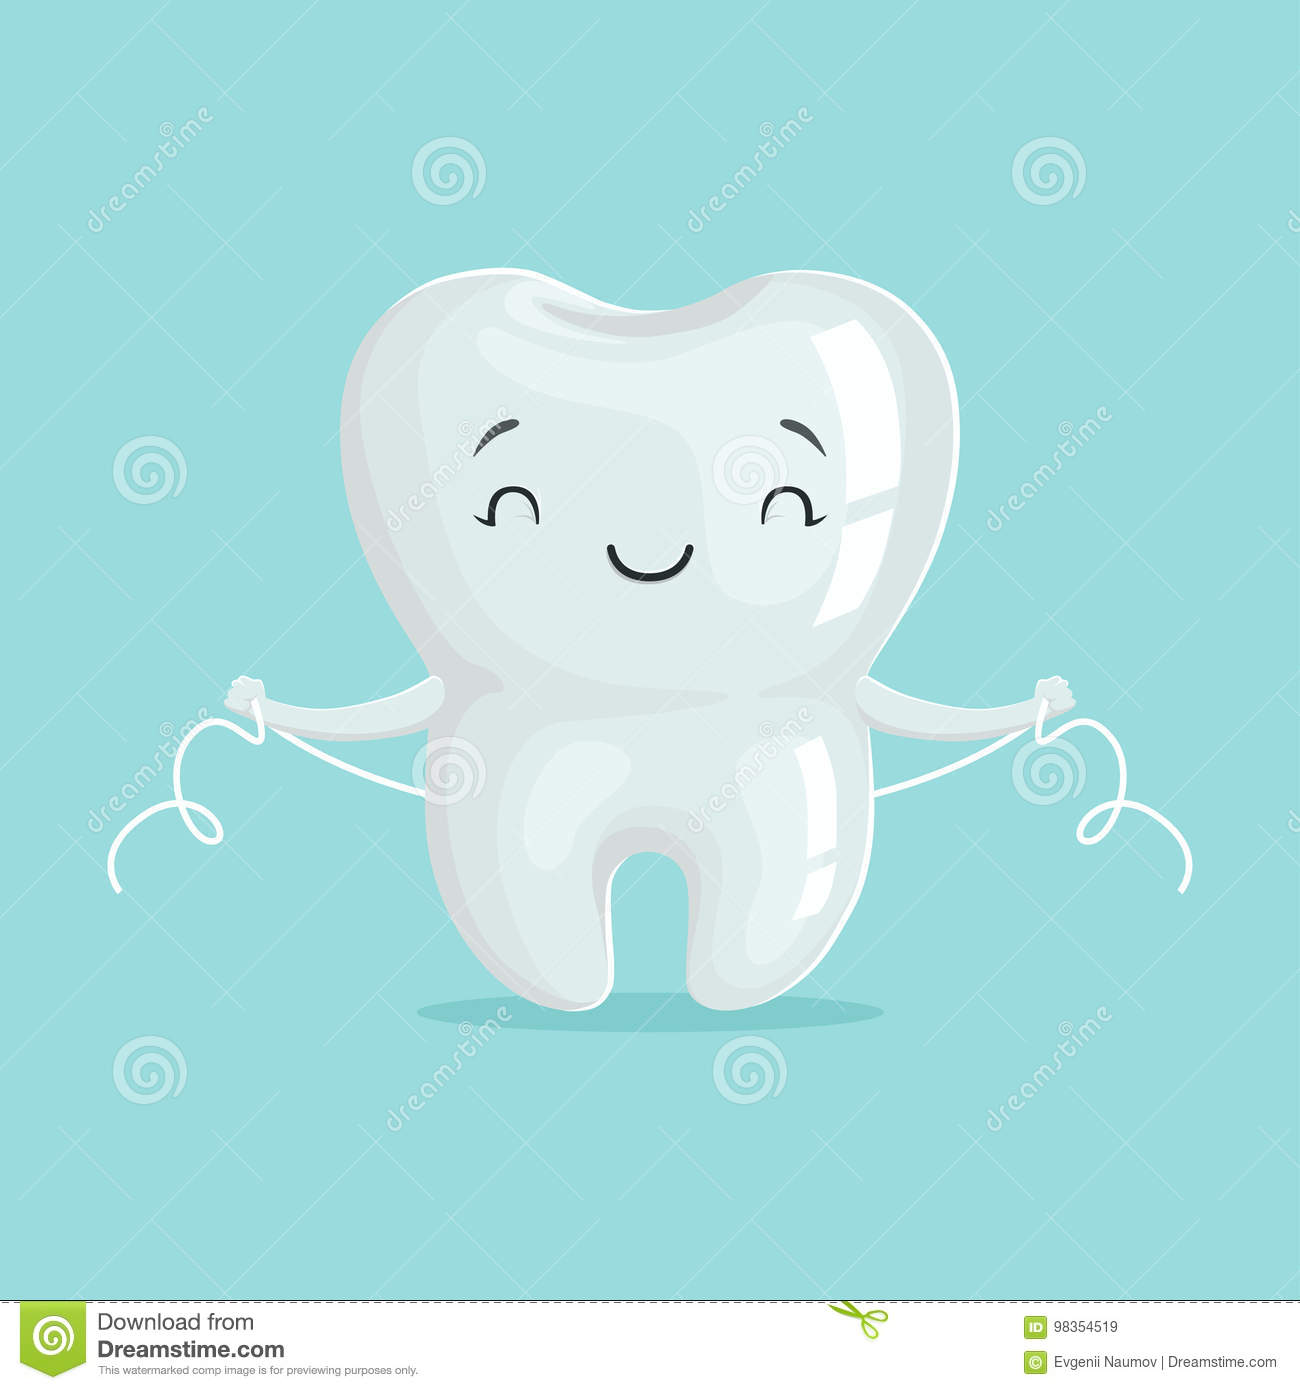 Cute healthy white cartoon tooth character cleaning itself with dental floss, oral dental hygiene, childrens dentistry